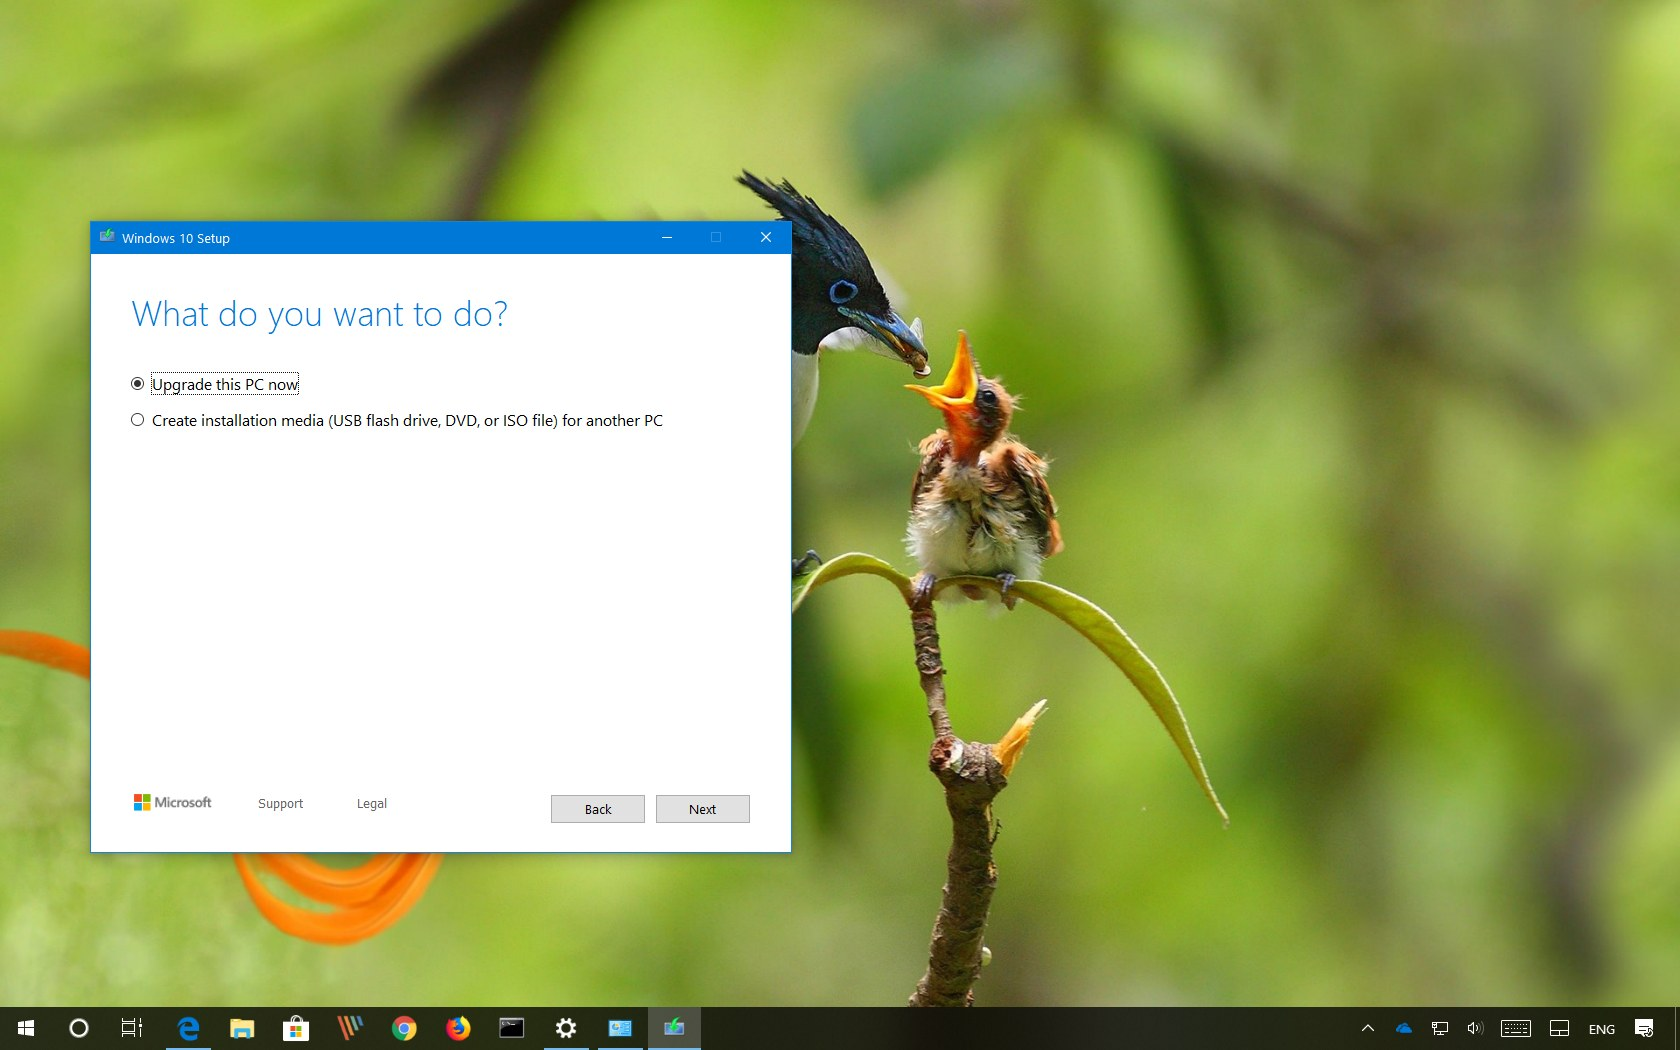 Microsoft windows 10 1903 iso download | Download official Windows